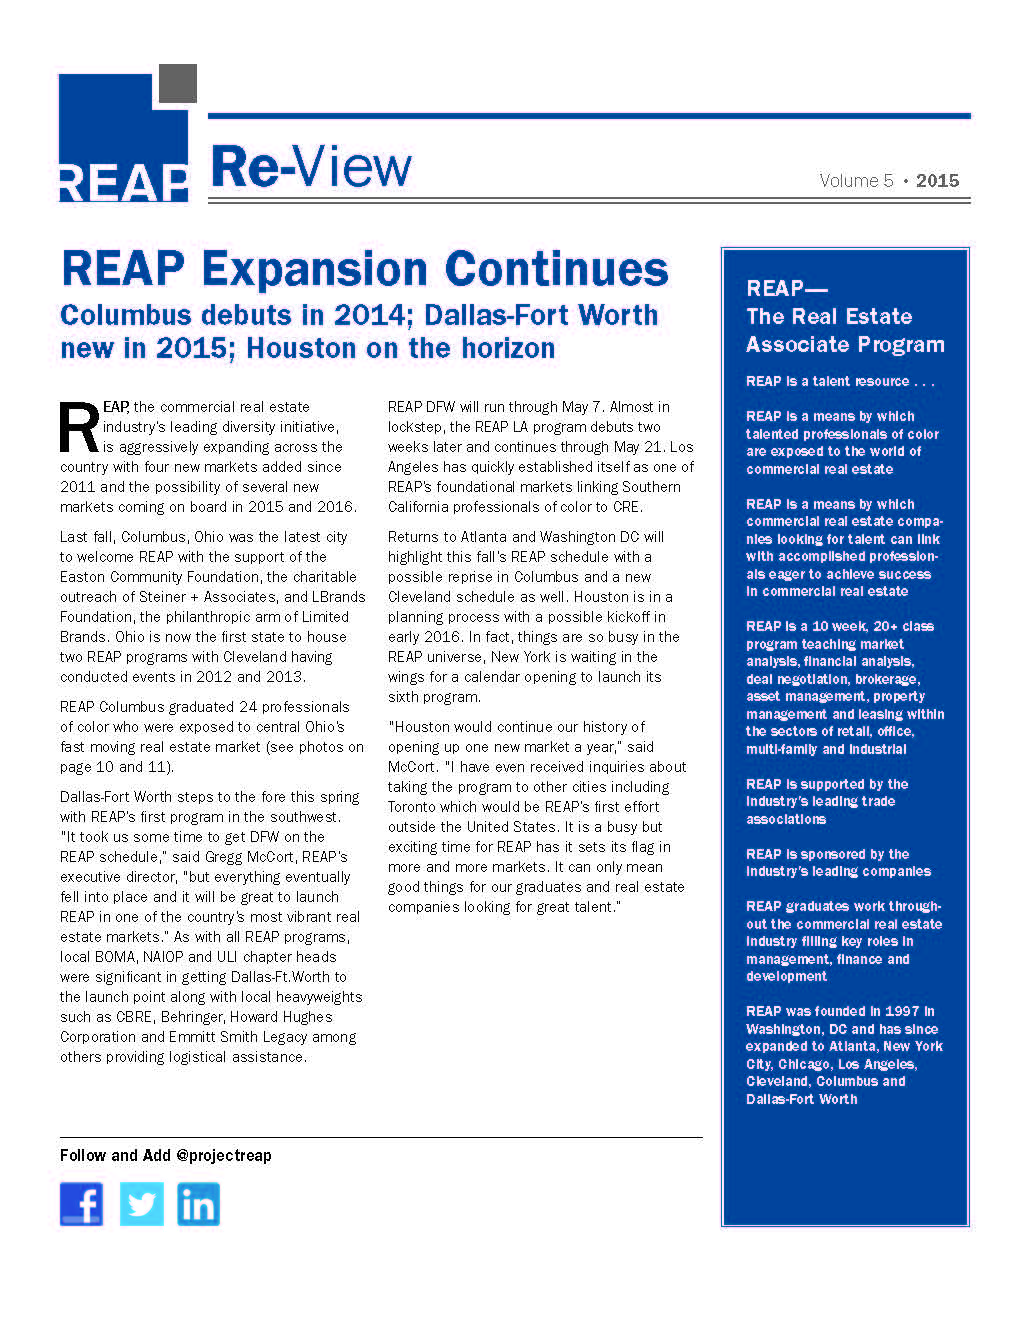 REAPNewsletter_Spring_2015_Page_1-1